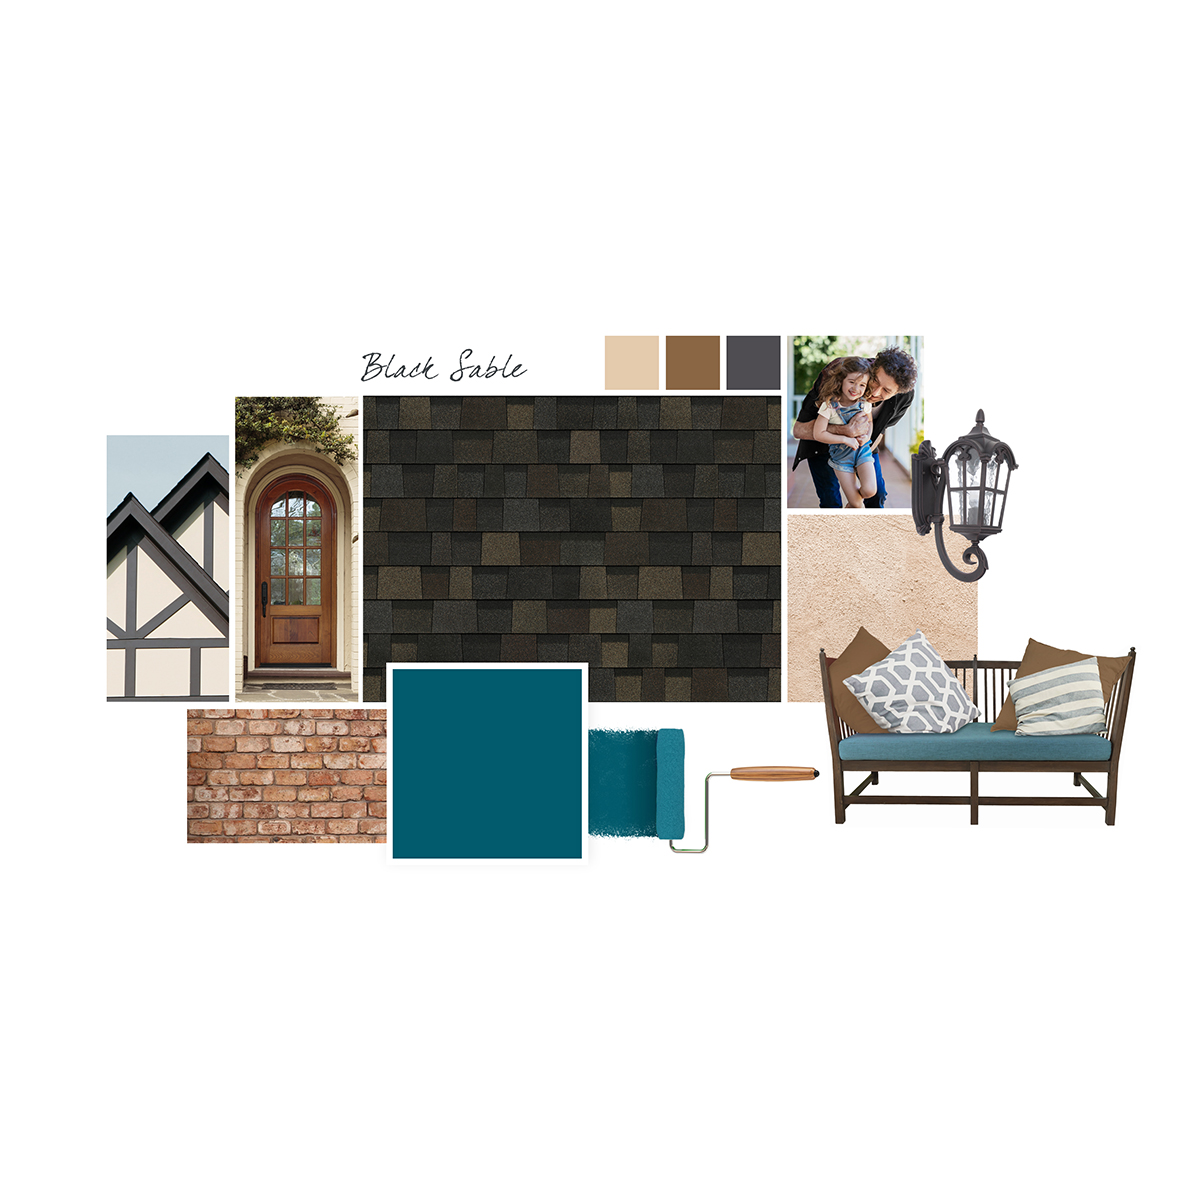 Owens Corning introduces Black Sable as the 2019 Shingle Color of the Year.